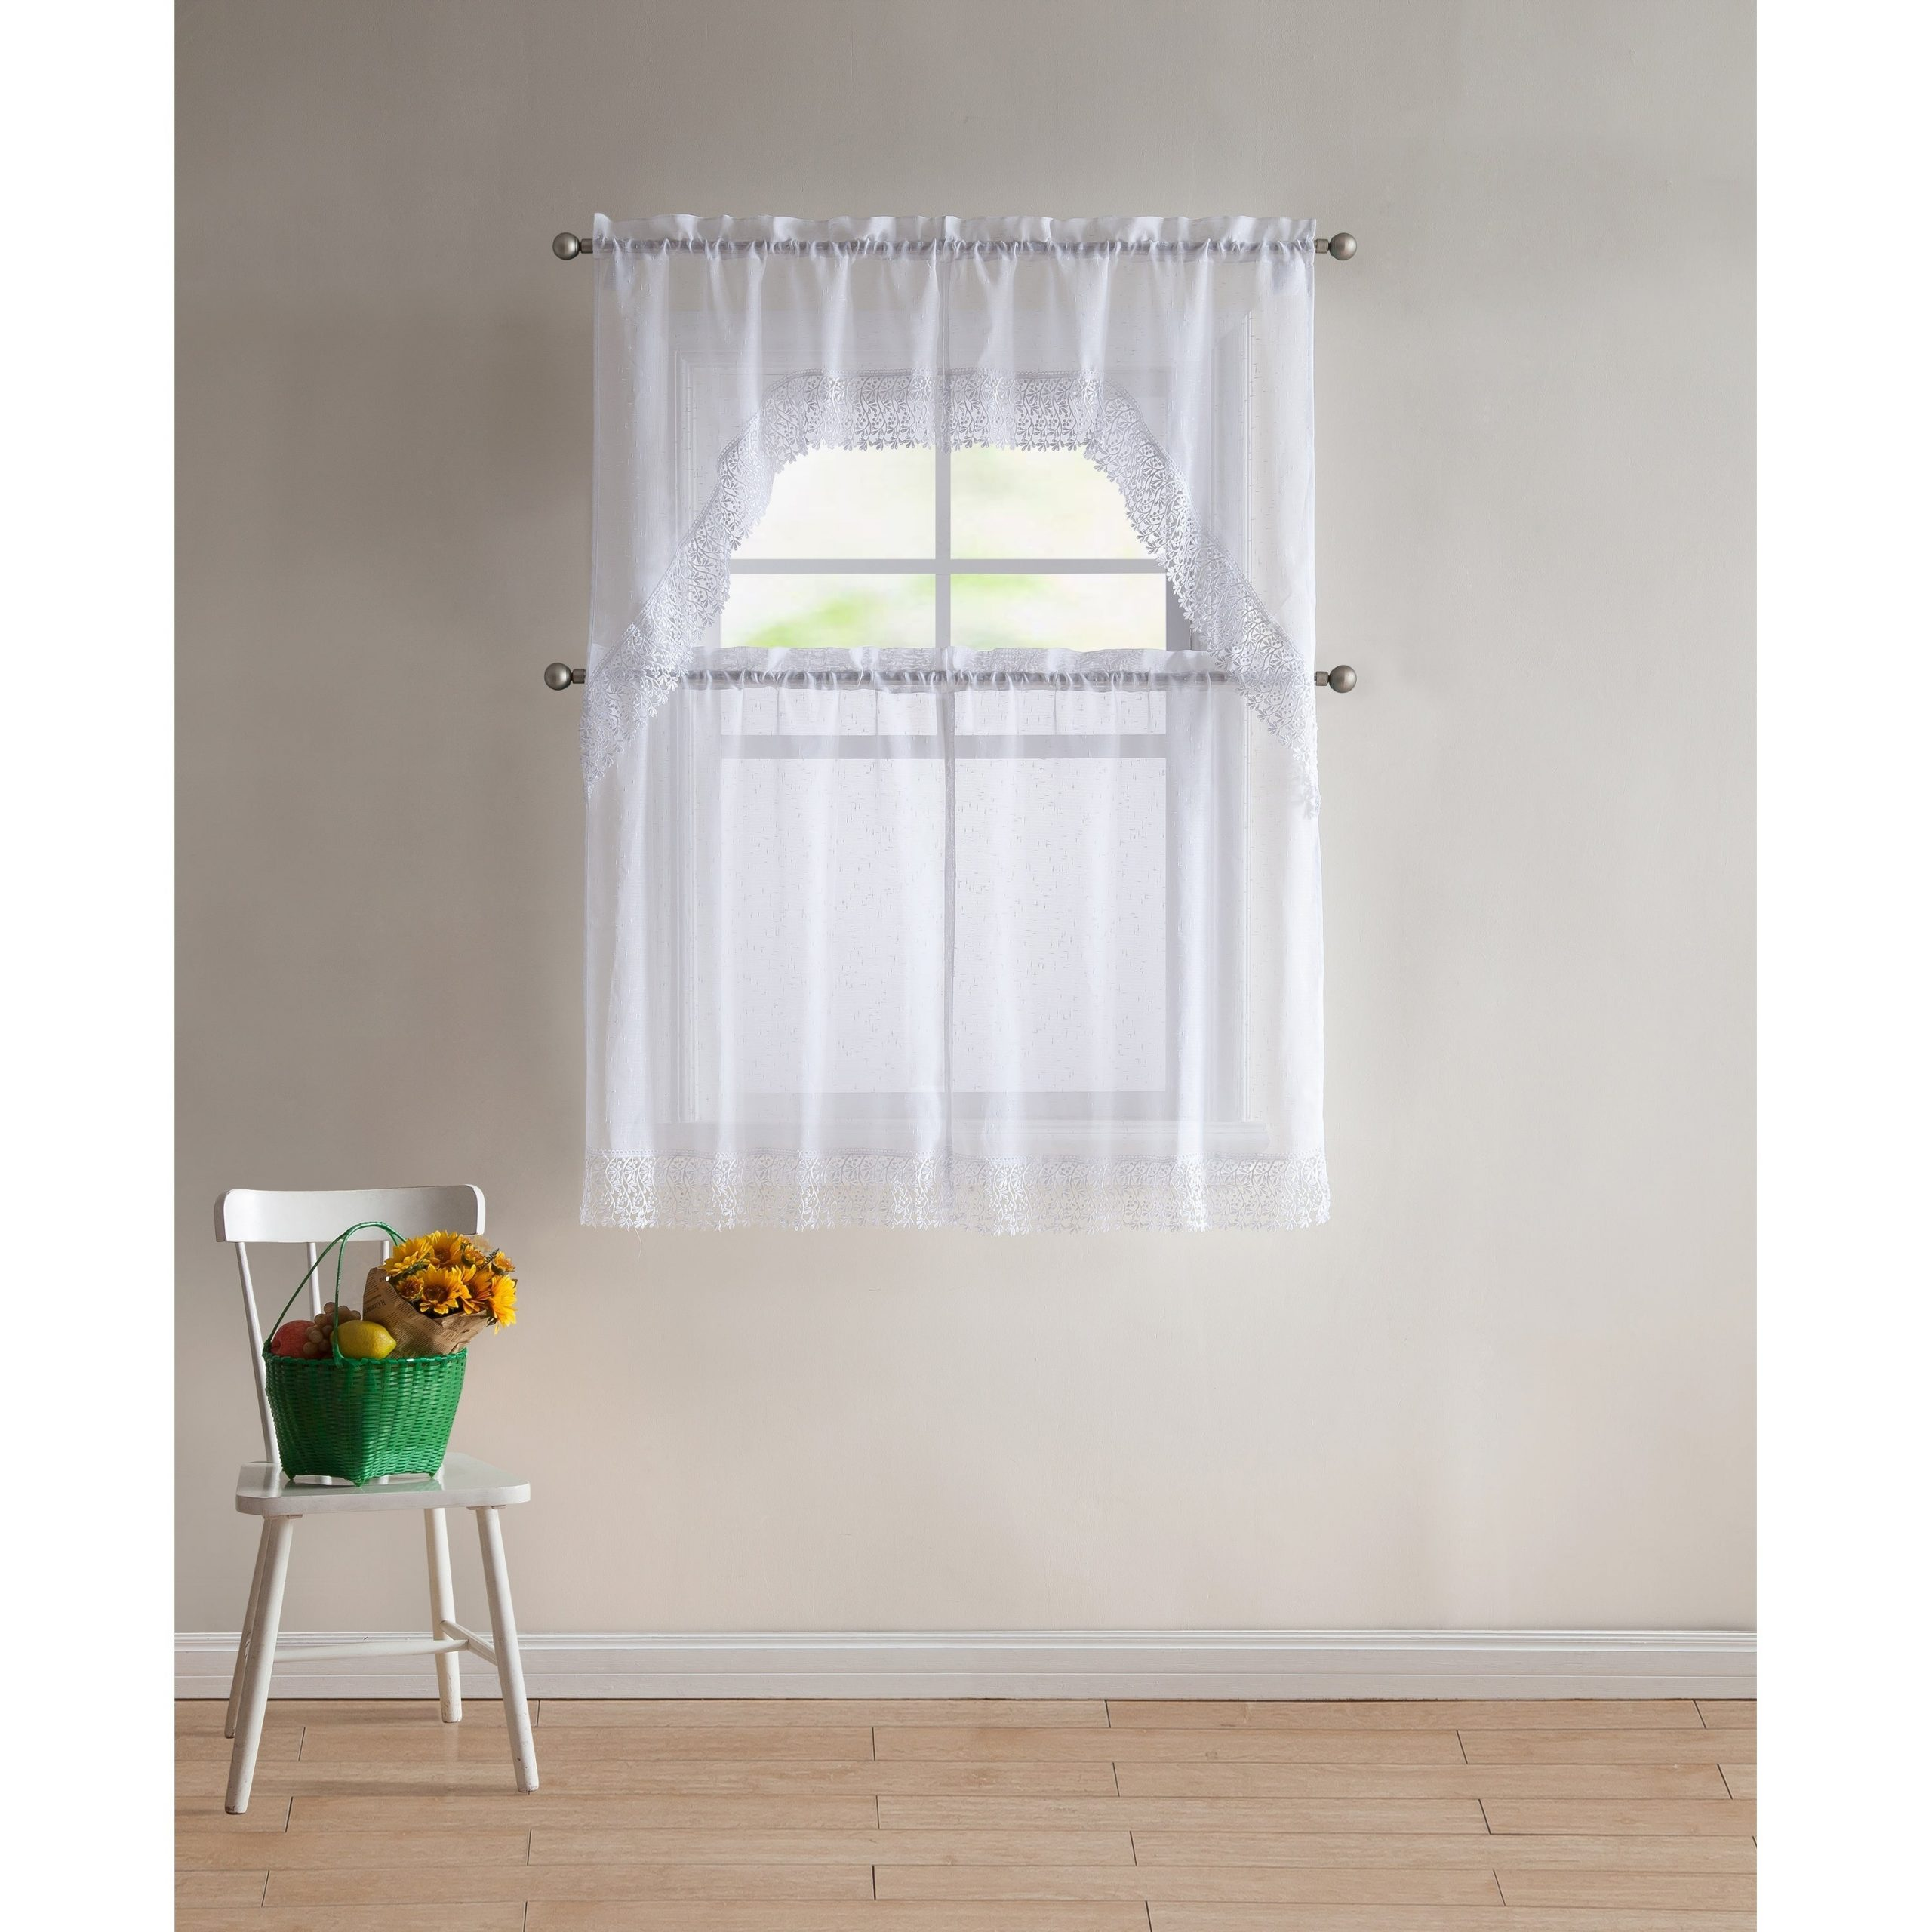 Vcny Home Farrah 4 Piece Kitchen Curtain Set Pertaining To Spring Daisy Tiered Curtain 3 Piece Sets (View 20 of 20)